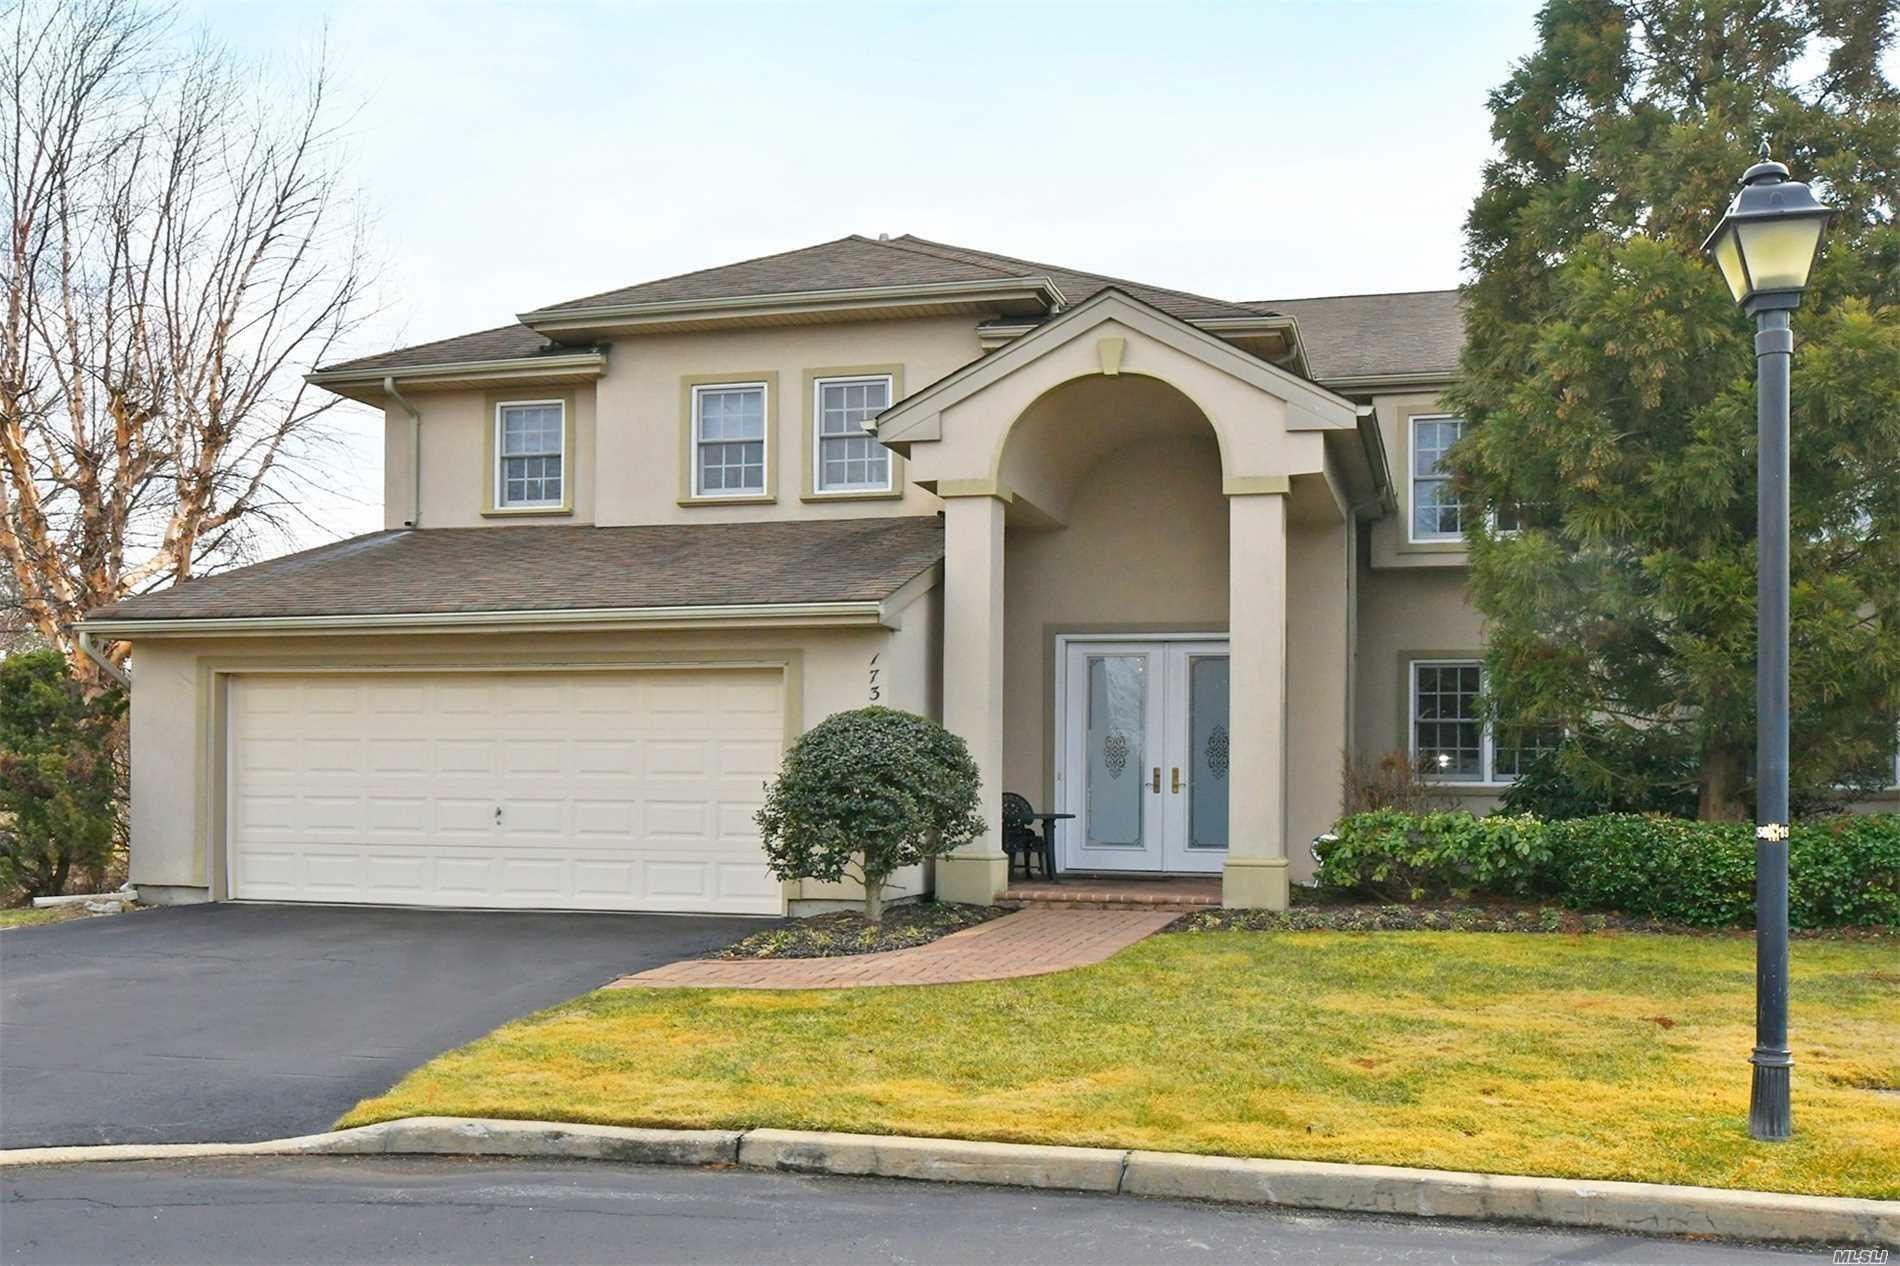 The Greens Gated Luxury Community 3/4 Bedroom, 3 Full Bath, Viscaya Colonial Model. Gorgeous Wood Floors, Soaring Ceilings, Open Concept Floor Plan And Beautiful Views Of The Pond And Golf Course. This Diamond Condition End Unit Offers Full, Finished Walk Out Basement, Trex Deck With Magnificent Views And A Spacious Floor Plan. The Lifestyle You Crave With Clubhouse, Indoor And Outdoor Pools, Tennis And Much More.